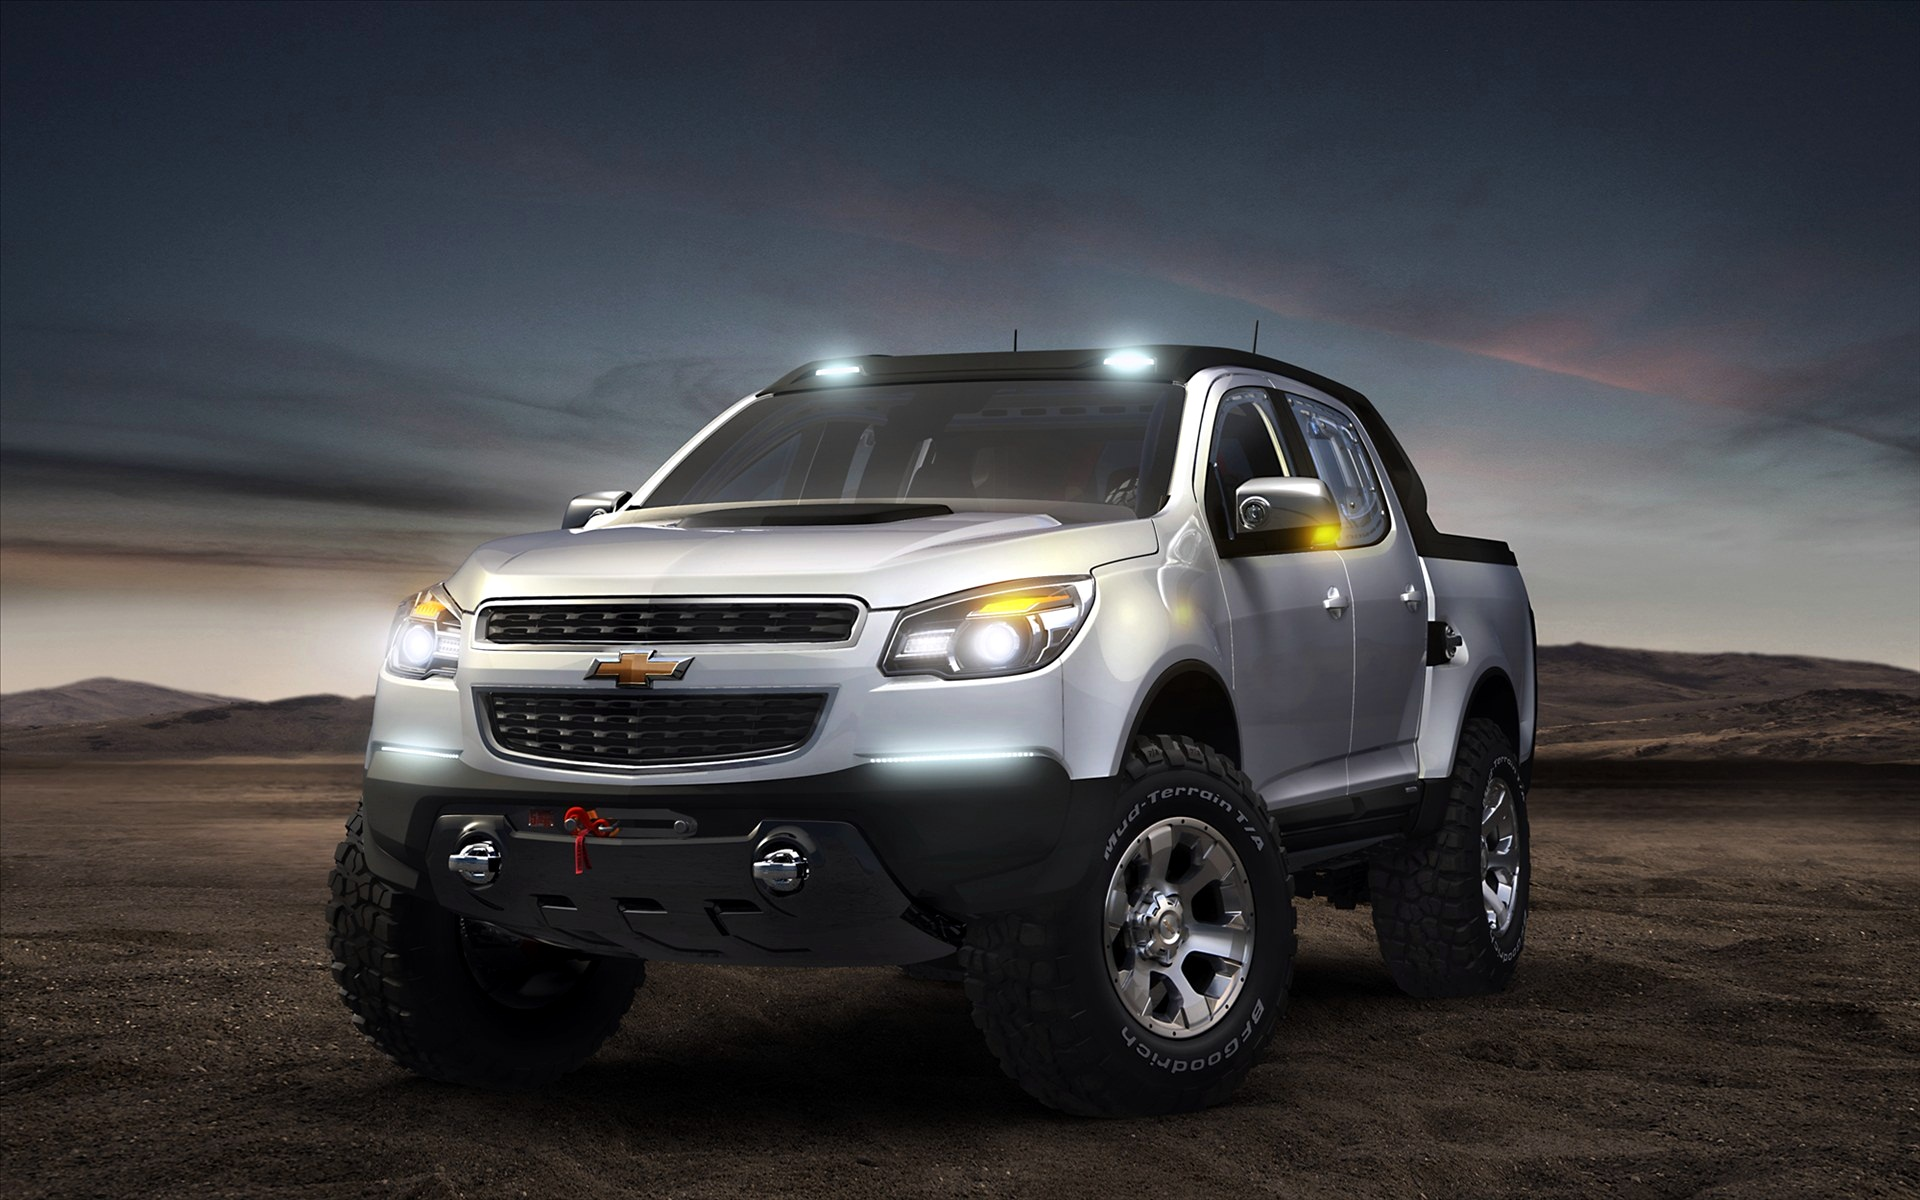 Chevrolet Colorado Rally Concept Car Wallpapers HD Wallpapers 1920x1200